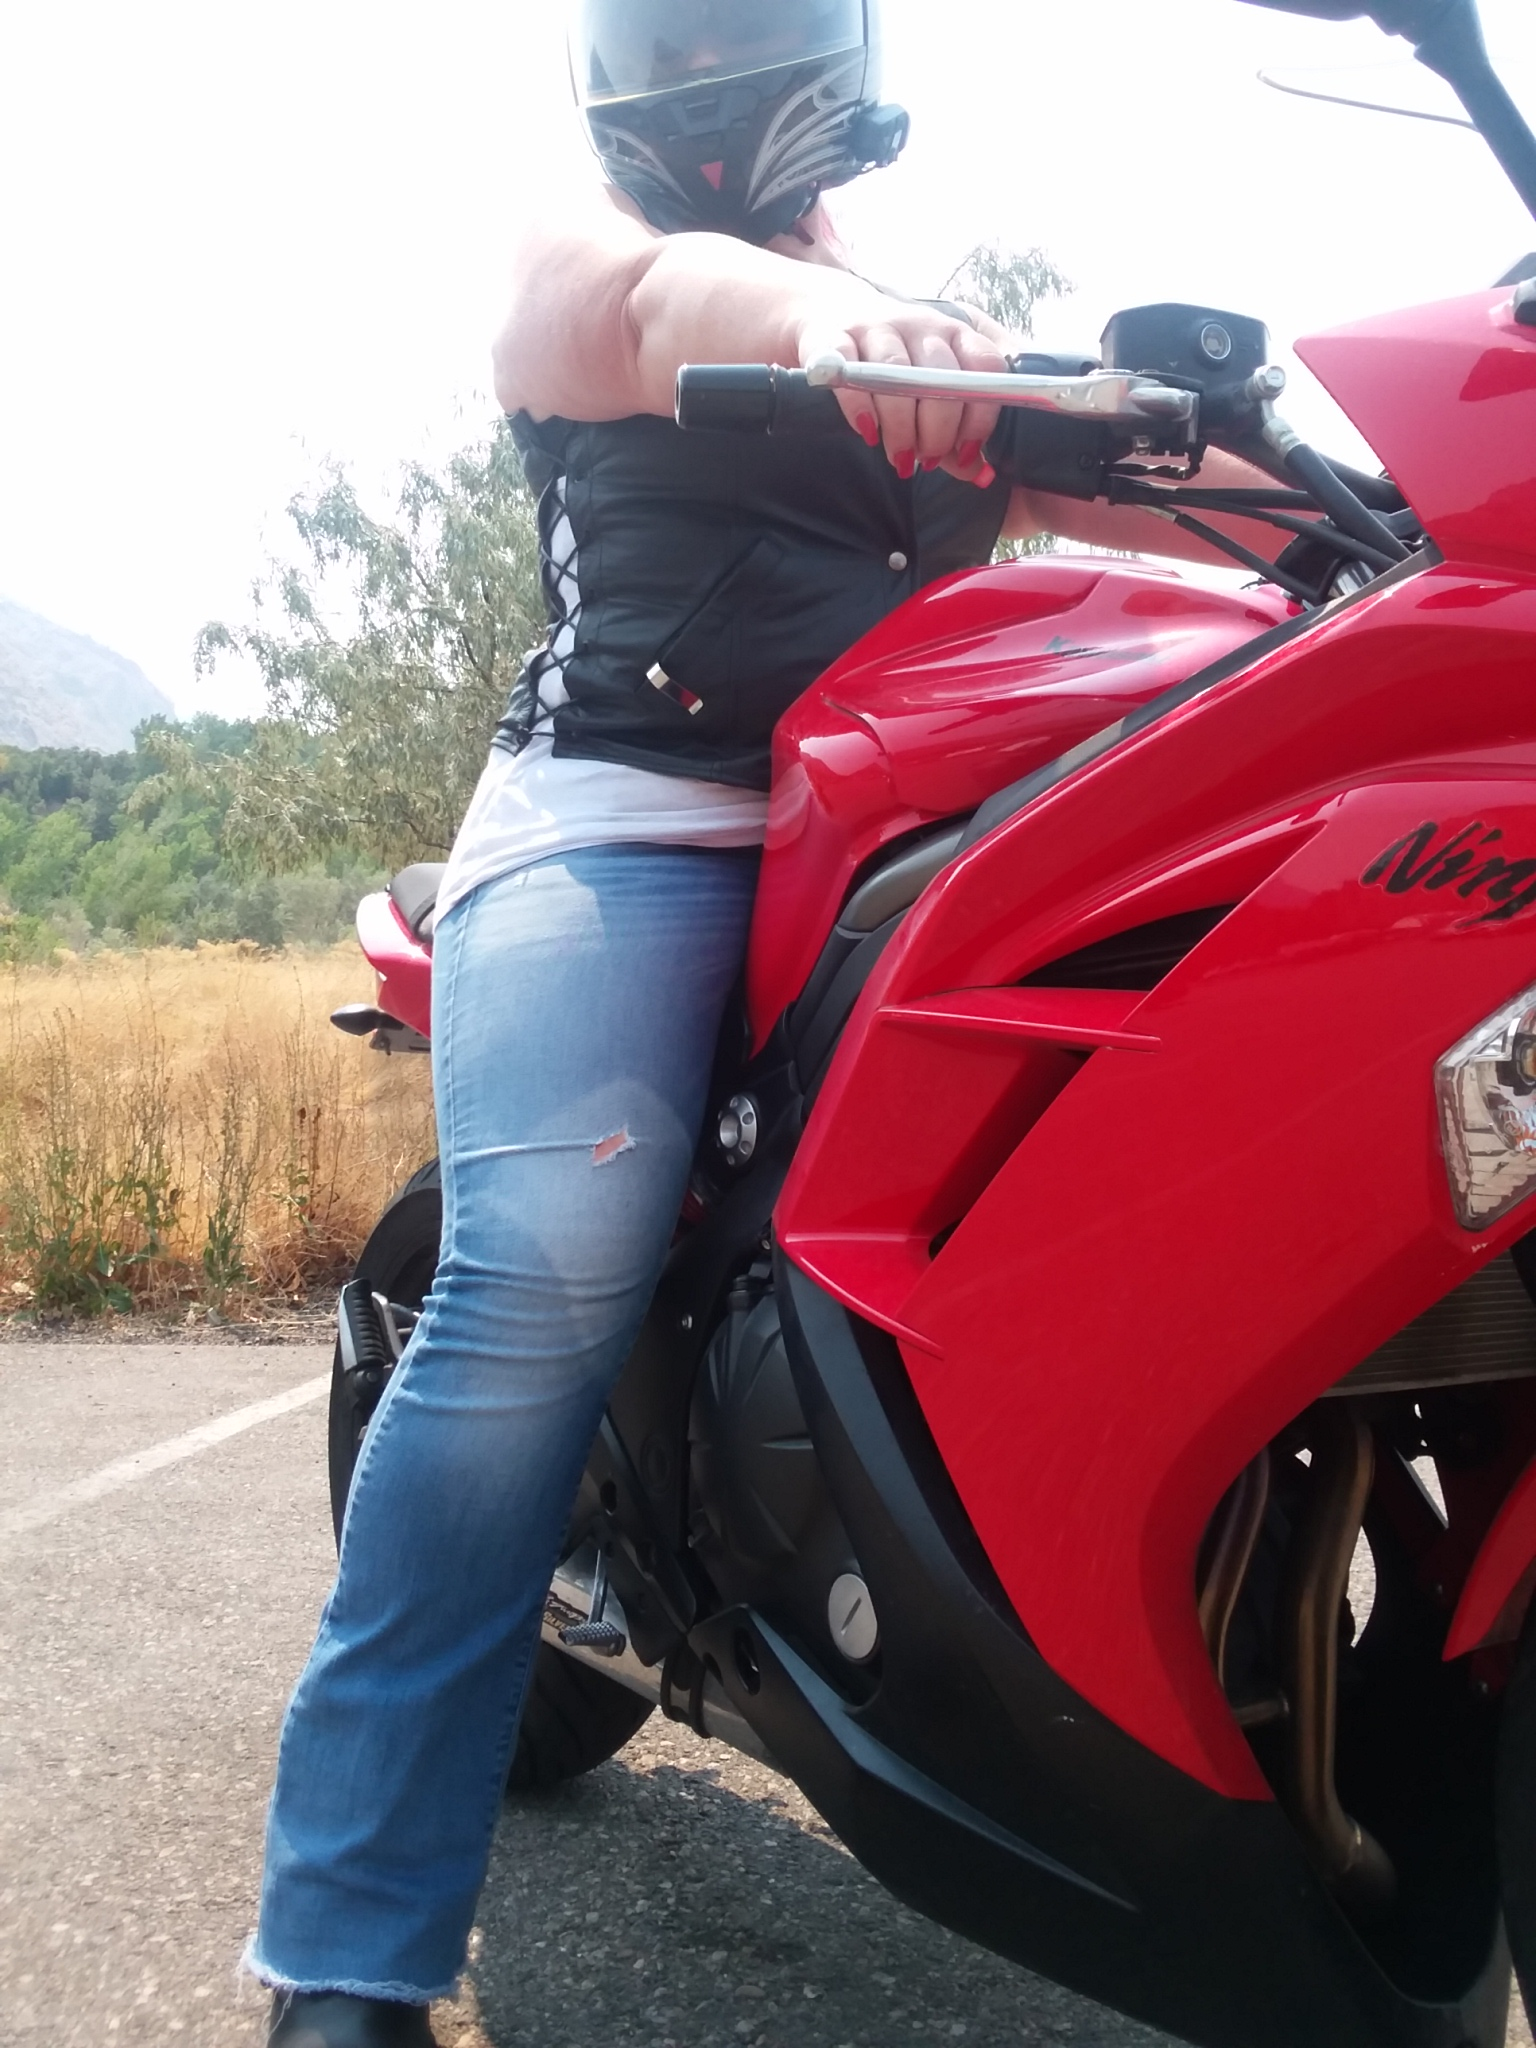 A helmeted woman sits astride a red Kawasaki Ninja 650, looking down at the camera, which faces up from a low vantage. She wears blue jeans, a white tank top and black leather vest. The tank top is visible through laces in the side of the vest. Her right arm is extended and she clutches the throttle of the motorcycle, showing brightly manicured red fingernails.